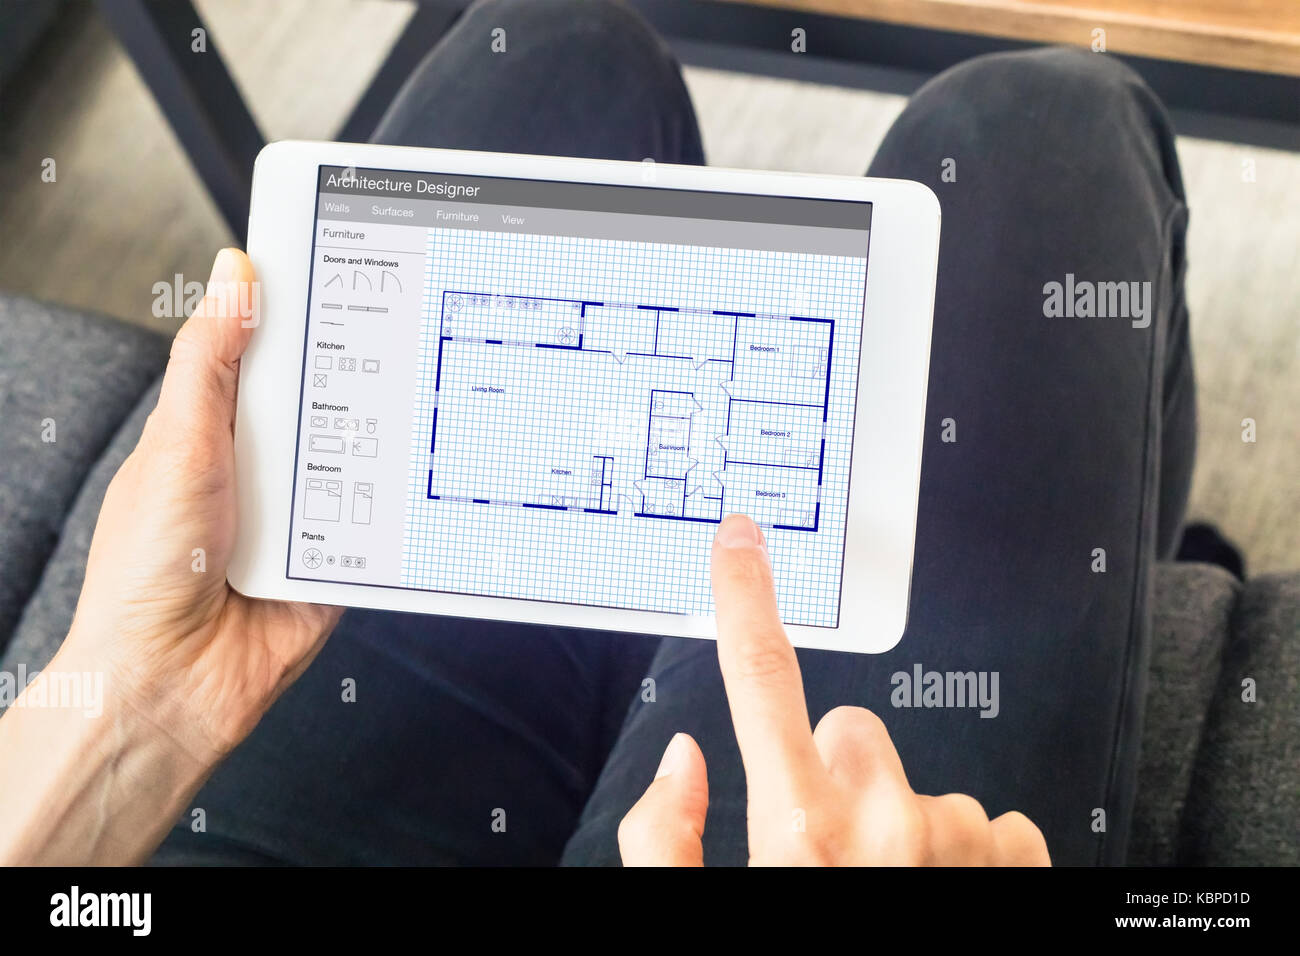 Person sketching a home design architecture project on a digital person sketching a home design architecture project on a digital tablet computer app showing a blueprint floor plan drawing malvernweather Choice Image